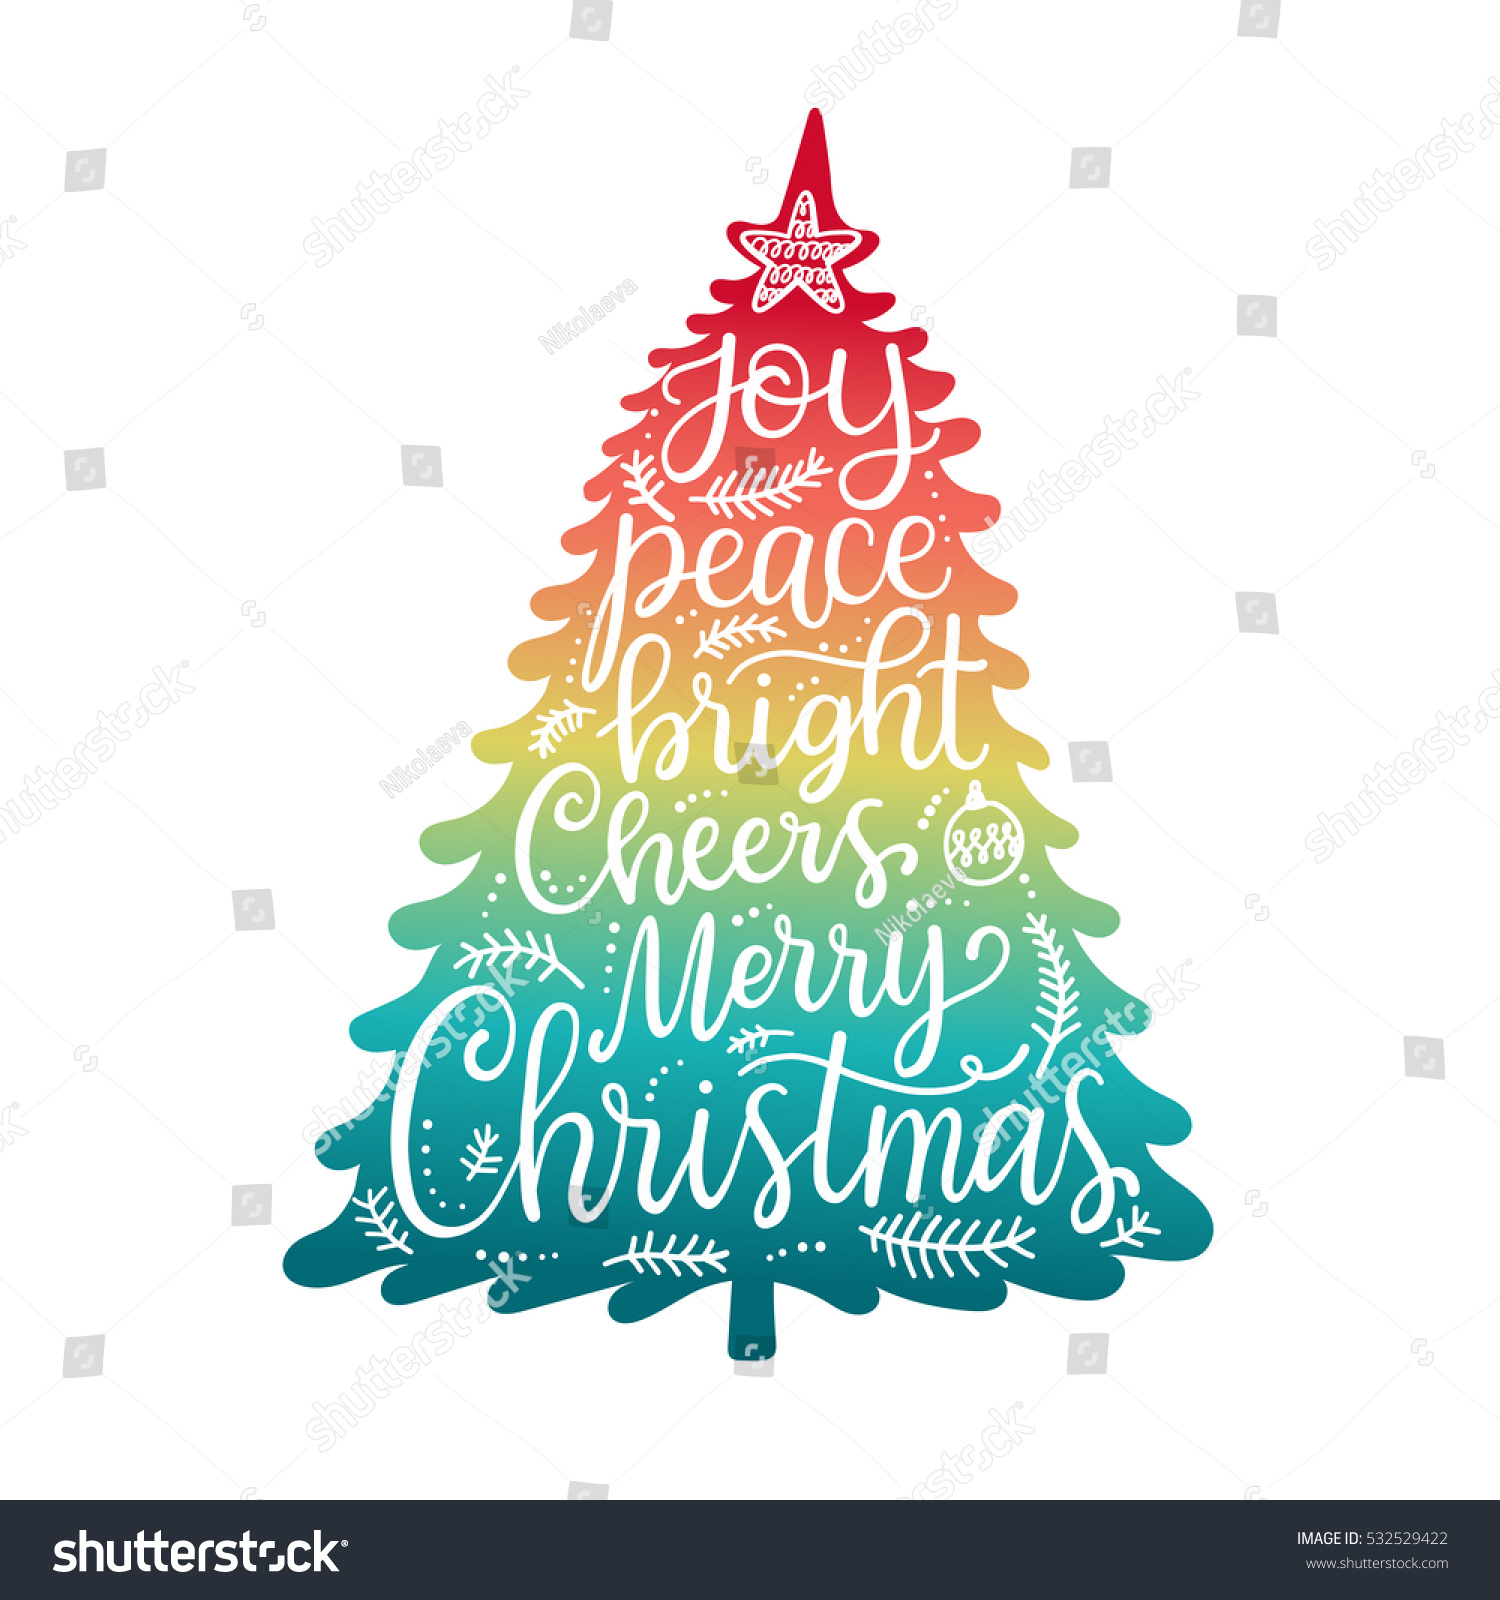 Merry Christmas Phrases Hand Lettering Greeting Stock Vector 2018